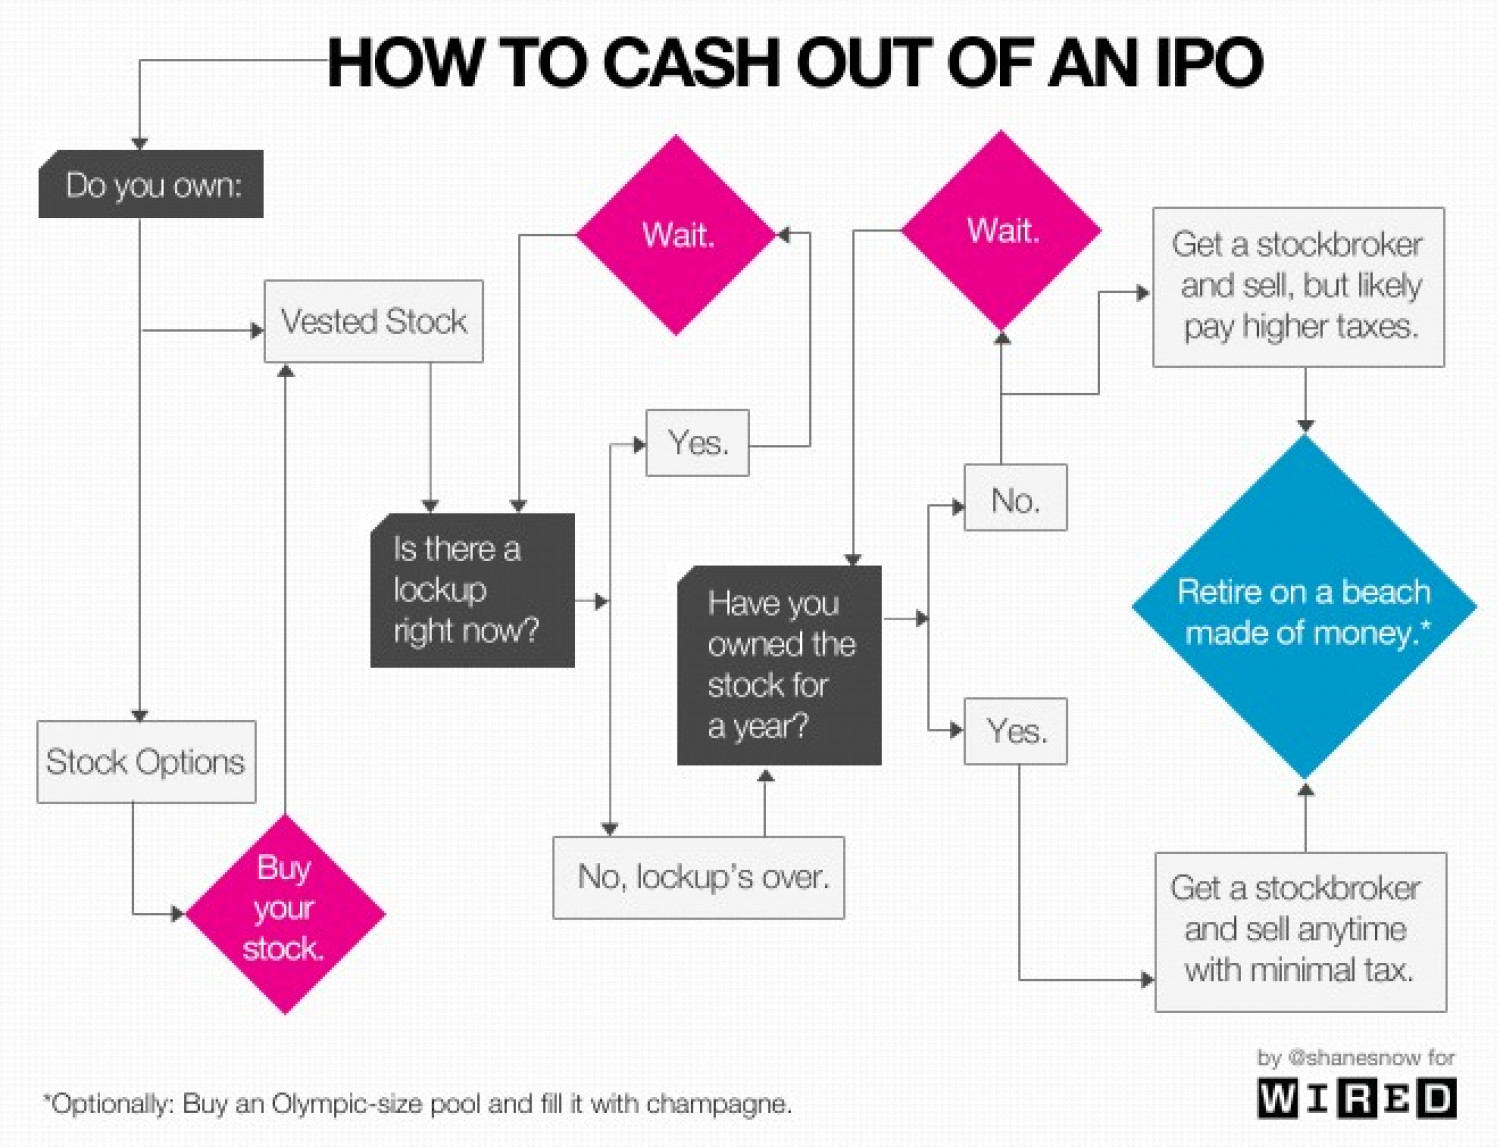 How To Cash Out Of An IPO Infographic